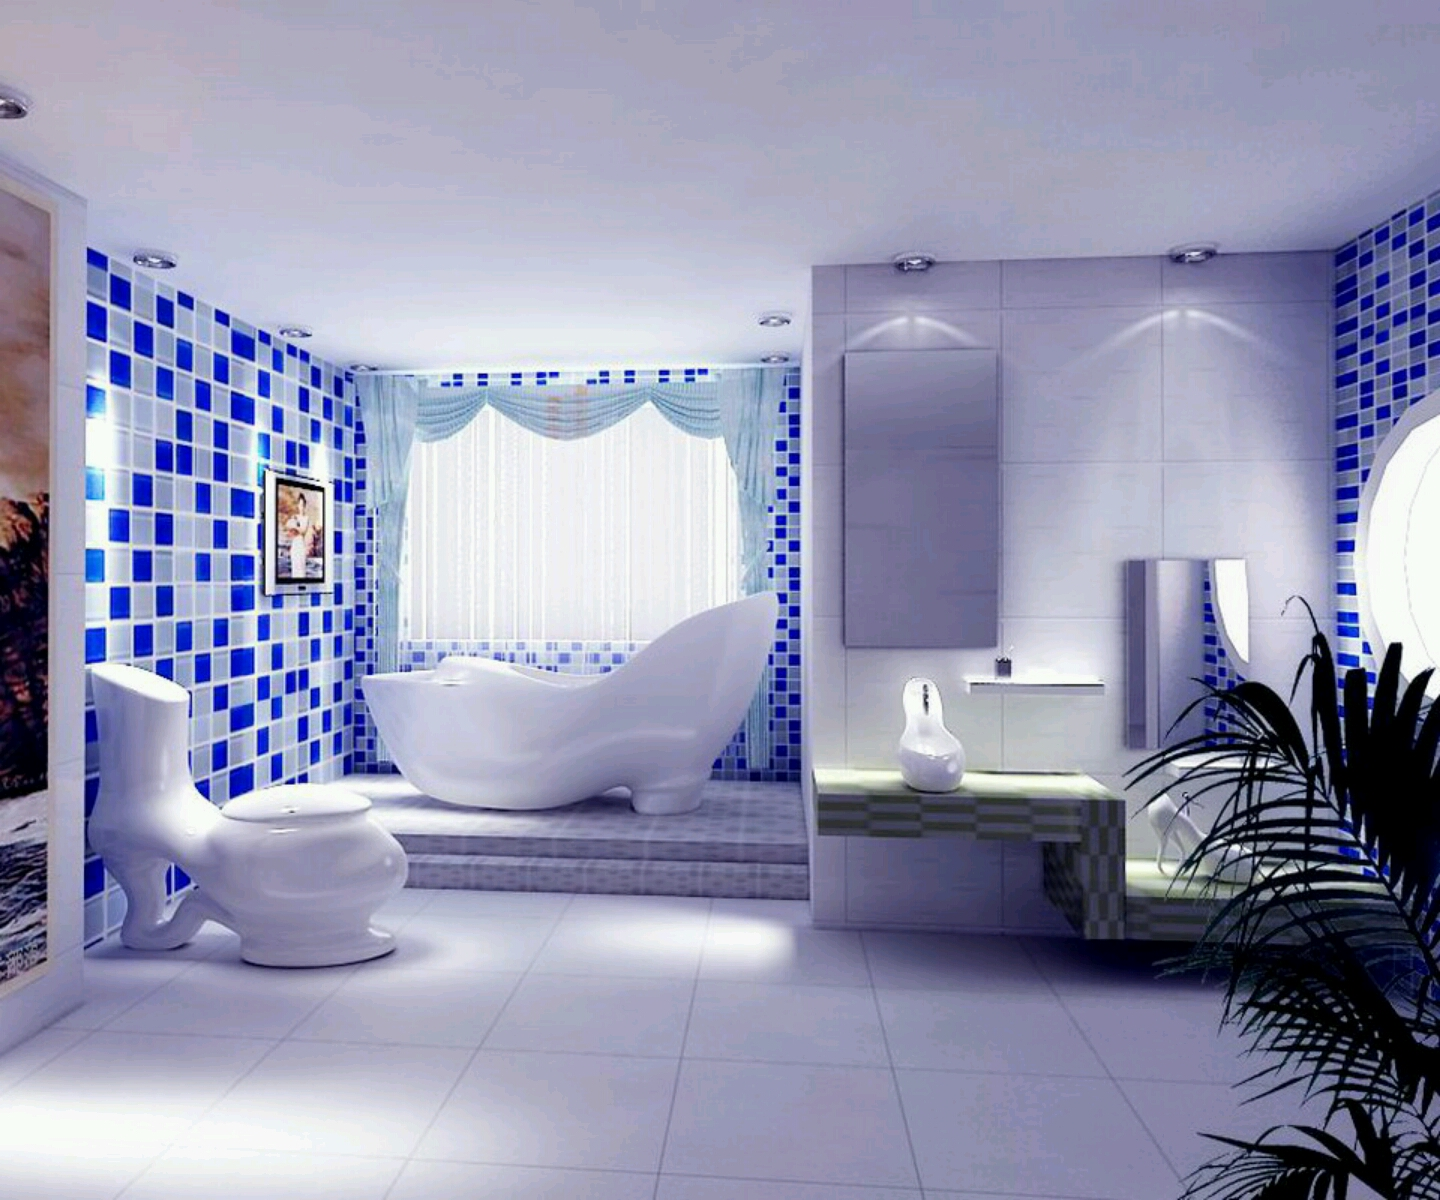 Http Shoaibnzm3 Blogspot Com 2013 01 Ultra Modern Washroom Designs Ideas Html